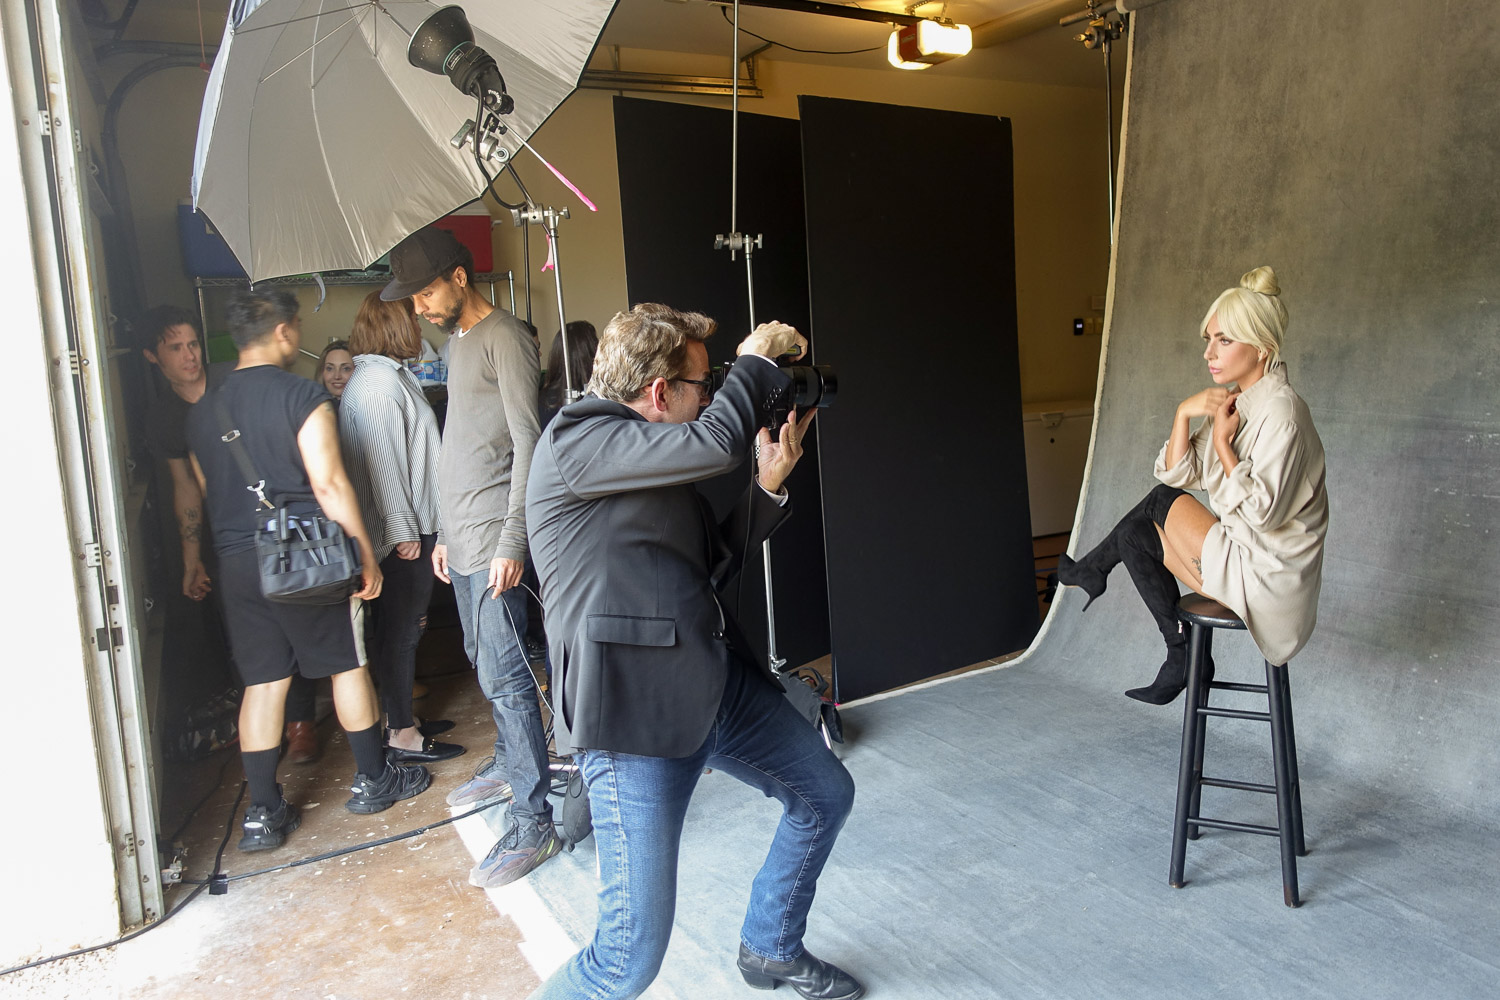 Behind the scenes with Art Streiber and Lady Gaga